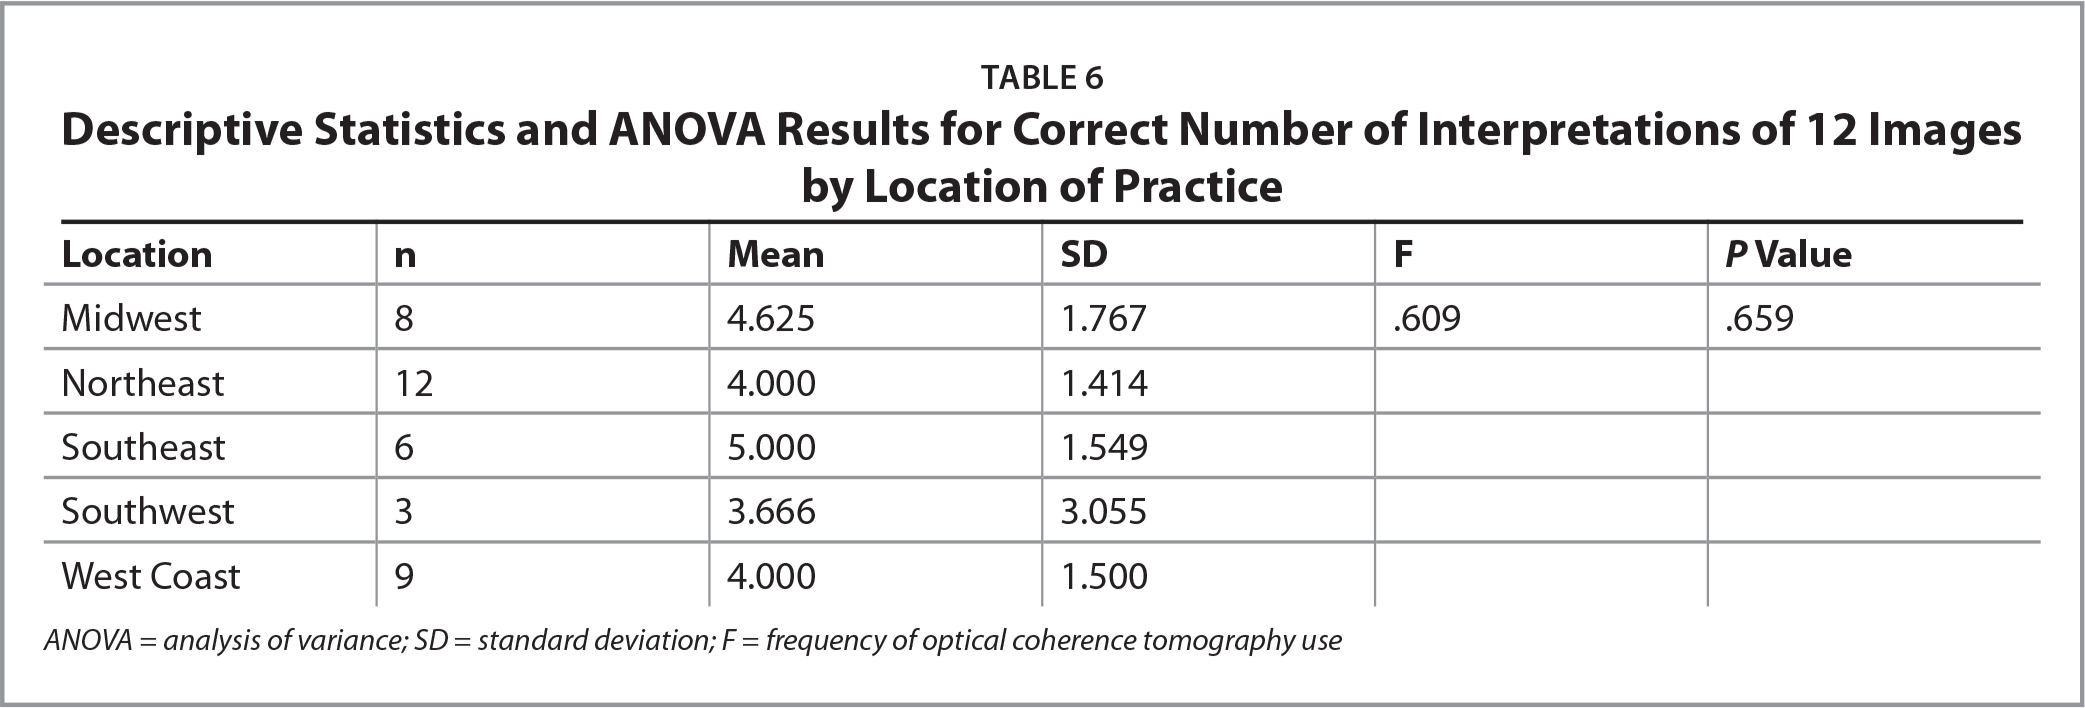 Descriptive Statistics and ANOVA Results for Correct Number of Interpretations of 12 Images by Location of Practice